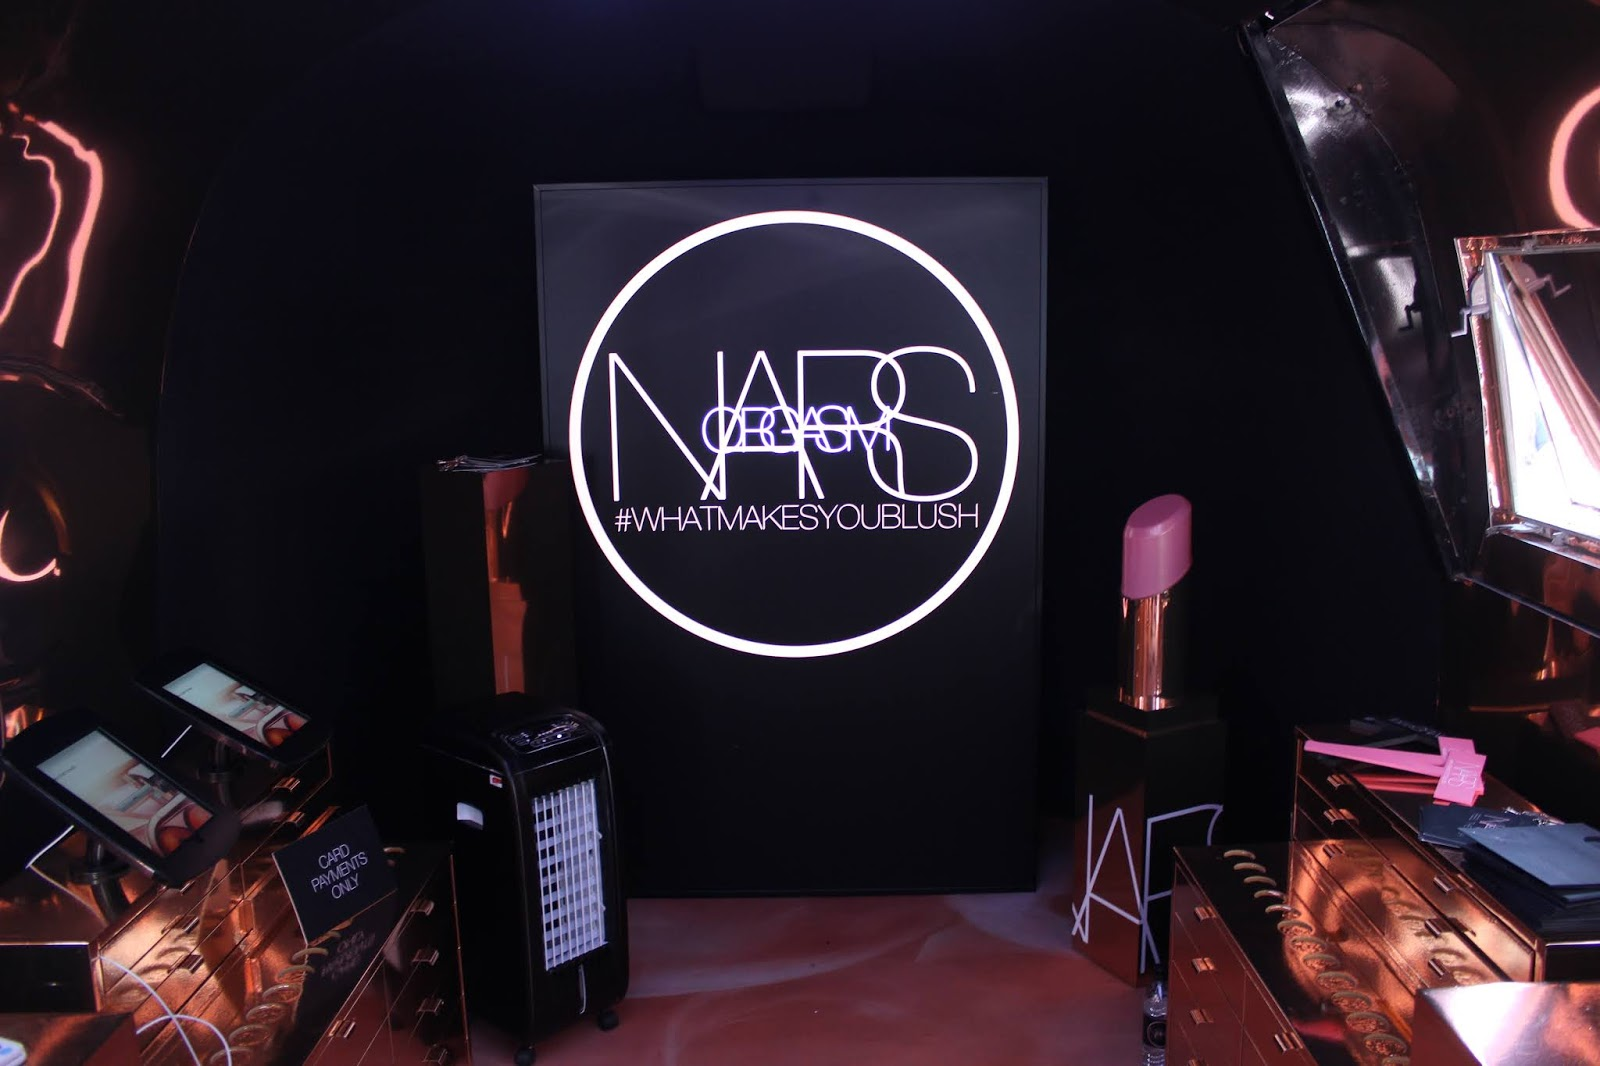 A Nars Orgasm Tour Bus sign with large lipstick